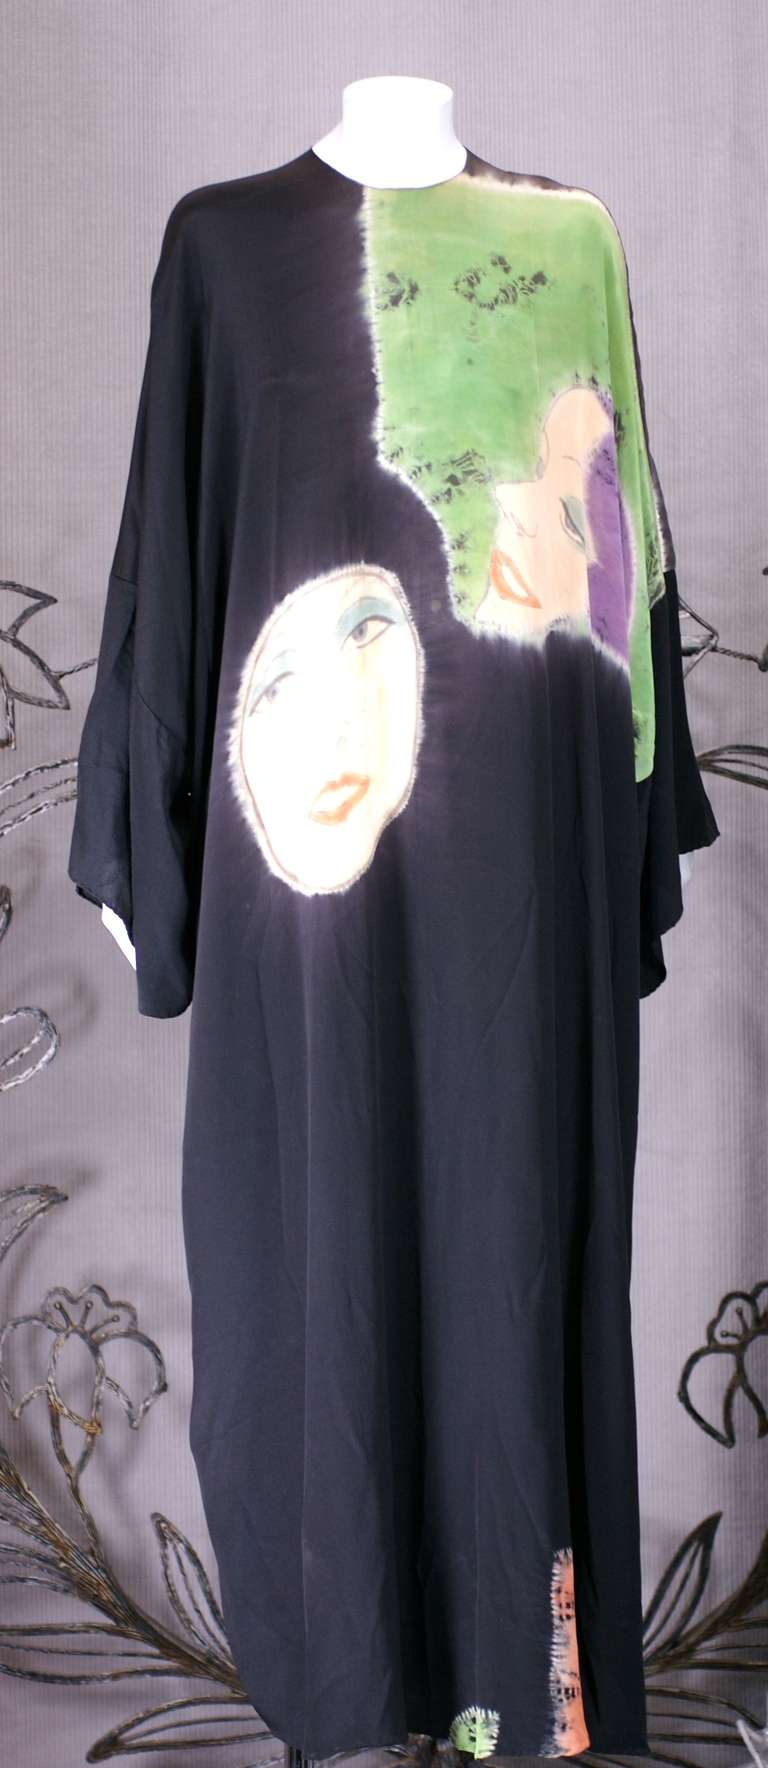 Rare, historical caftan of silk crepe with hand painted and tie dyed images of Hollywood icons....one with lilac hair resembling Garbo. Halston's handpainted/tie dyed series from the early 1970's was produced by famed textile house Up Tied. Up